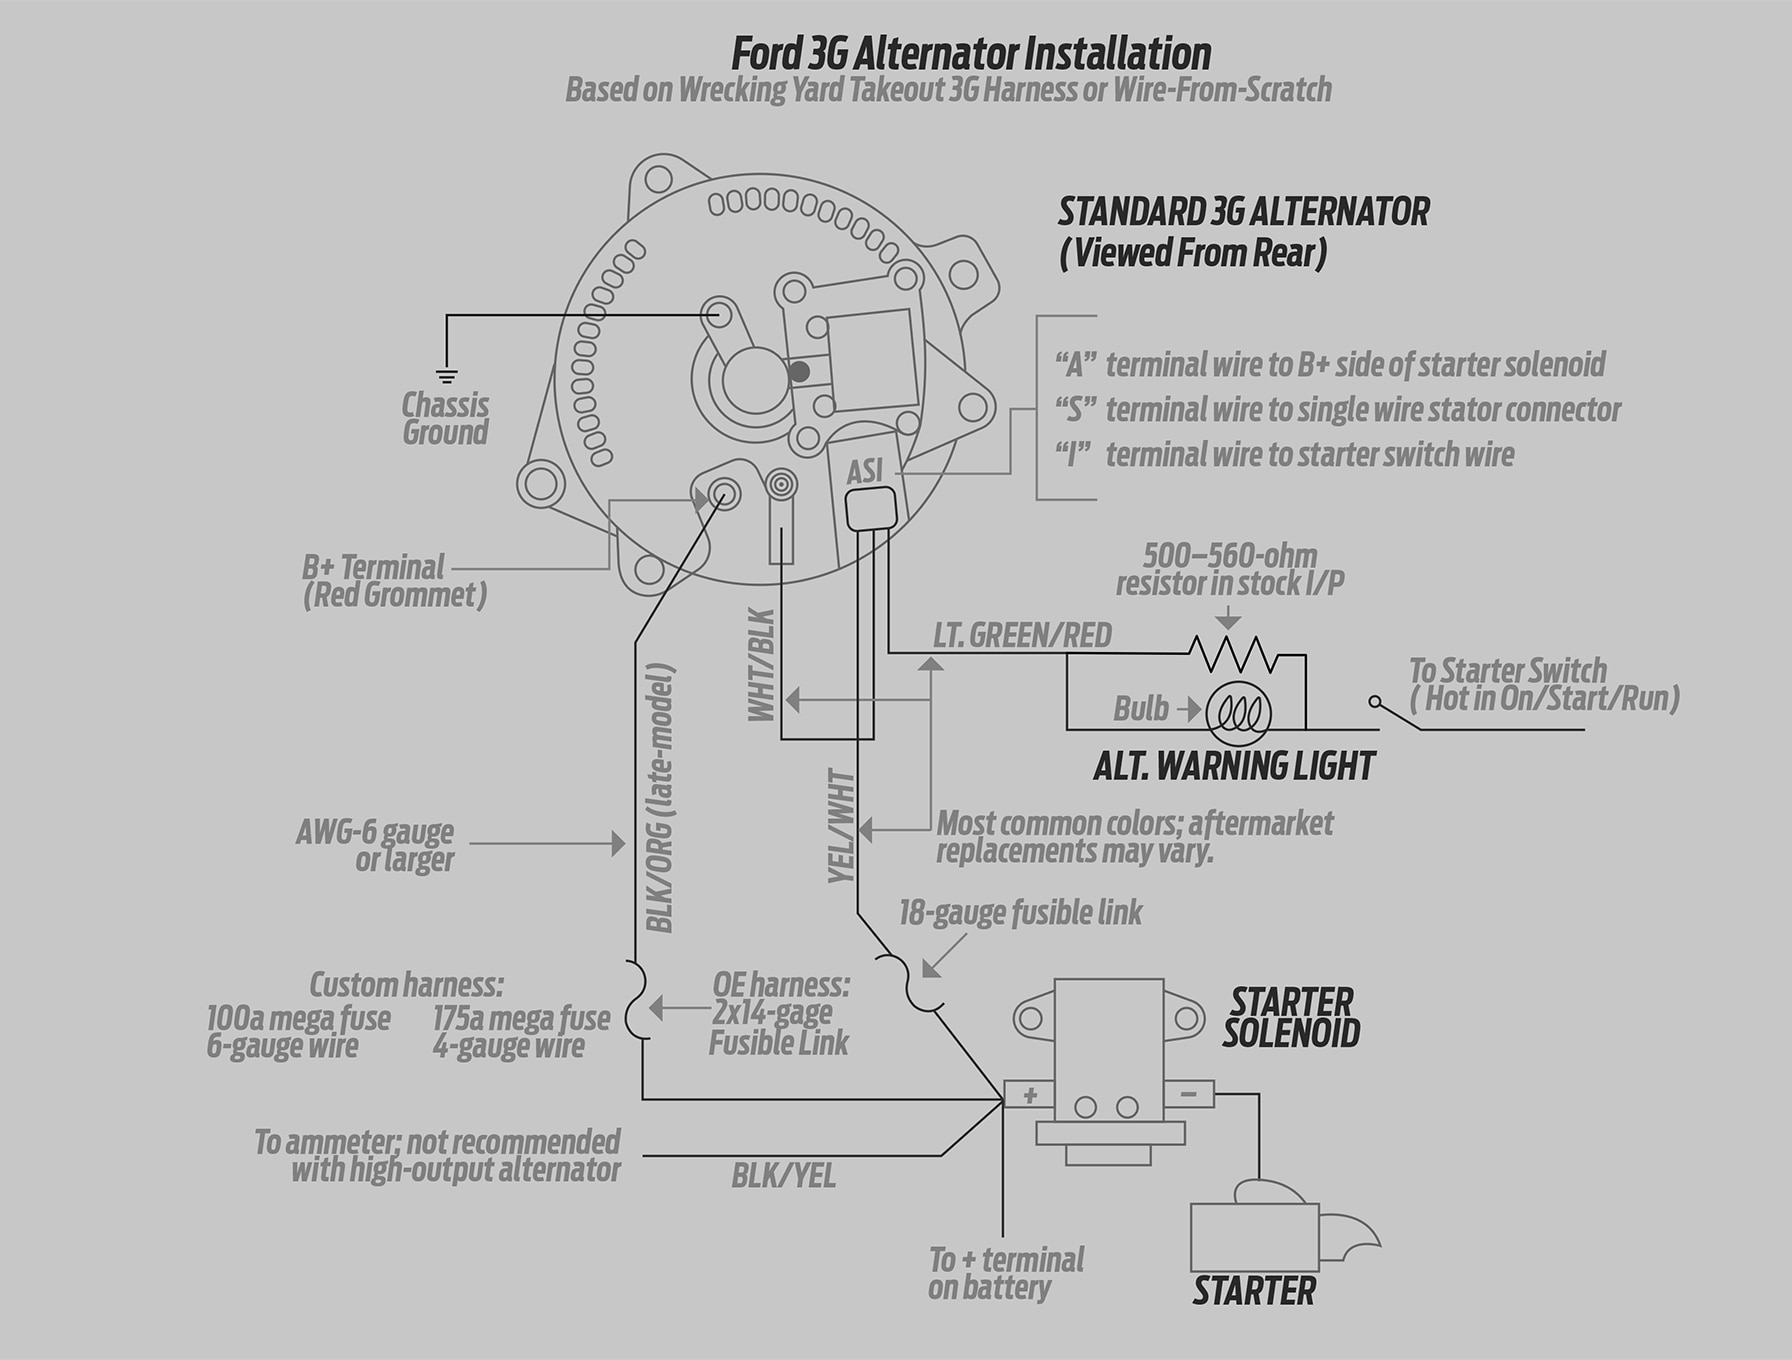 hight resolution of ford 3g alternator wiring harness wiring diagram experthow to install a high output ford 3g alternator